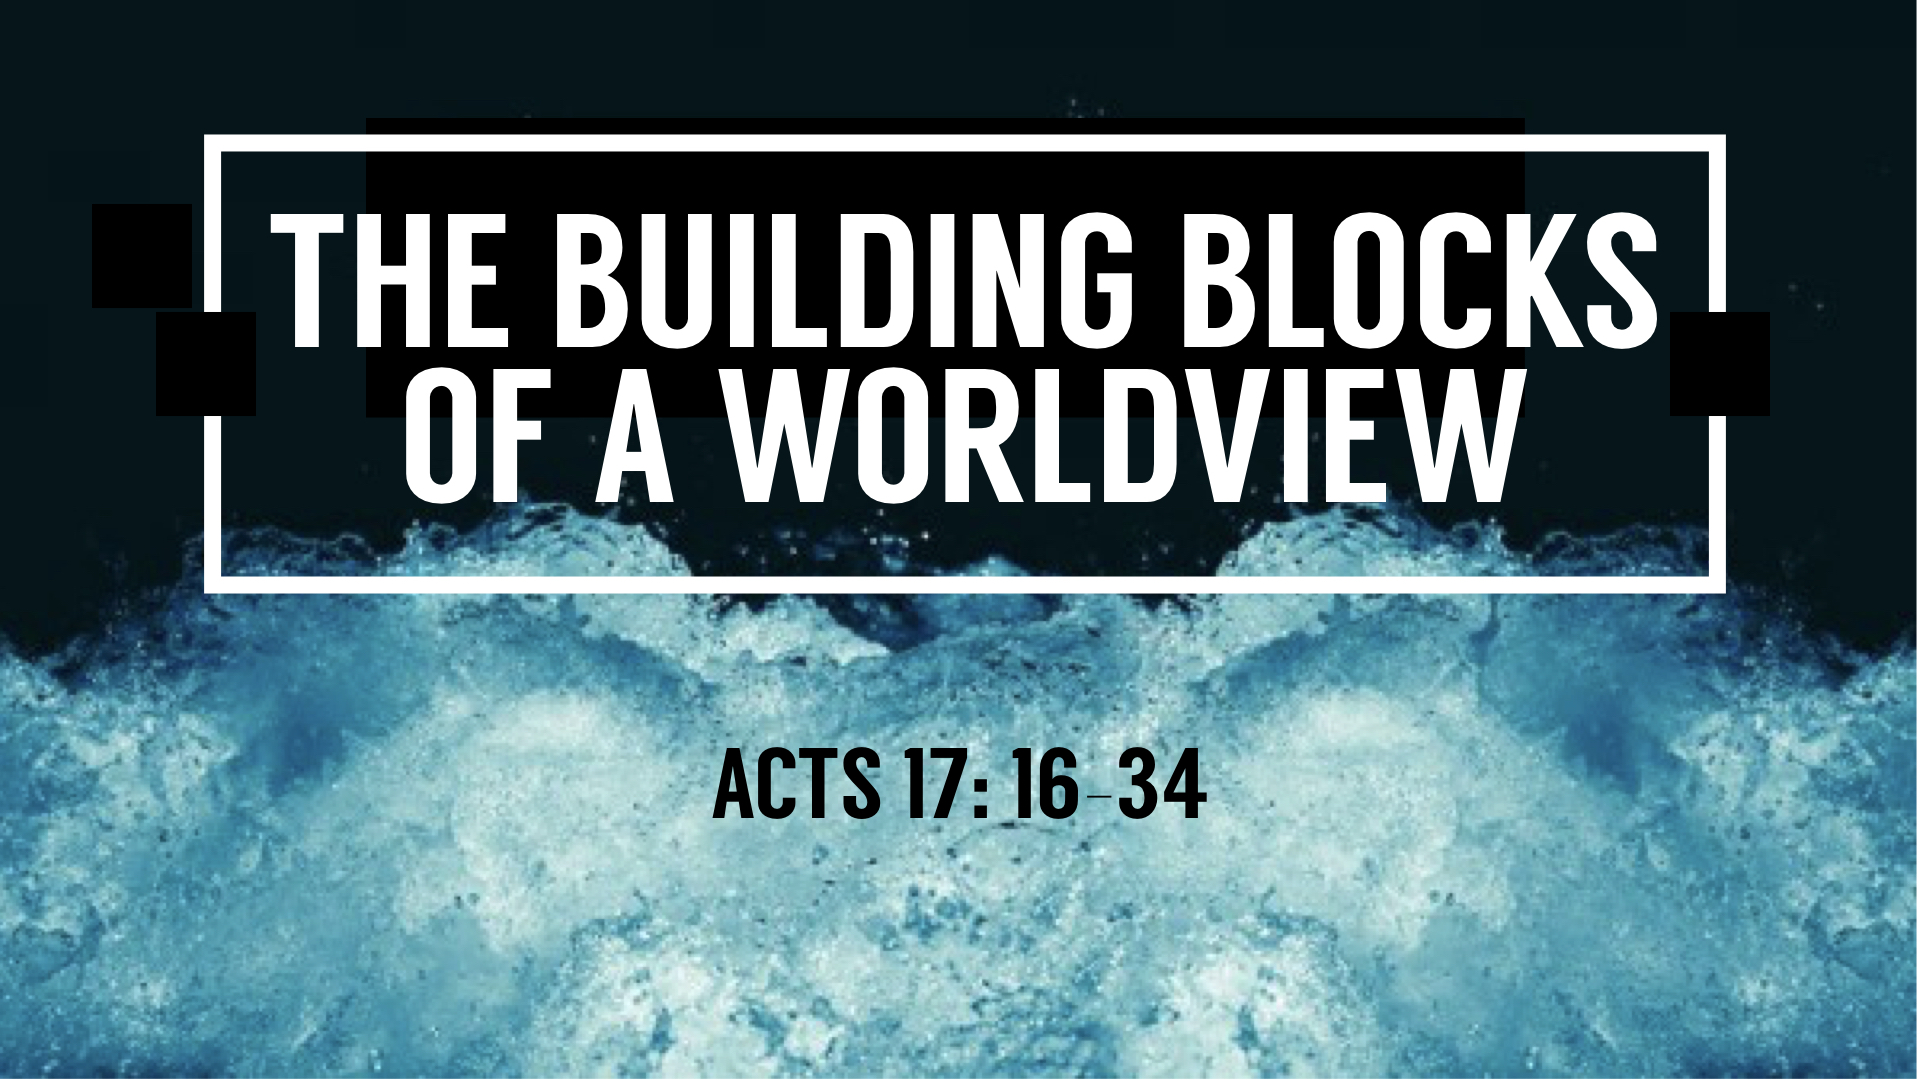 TCC Graphics - Worldview - The Building Blocks.001.jpeg